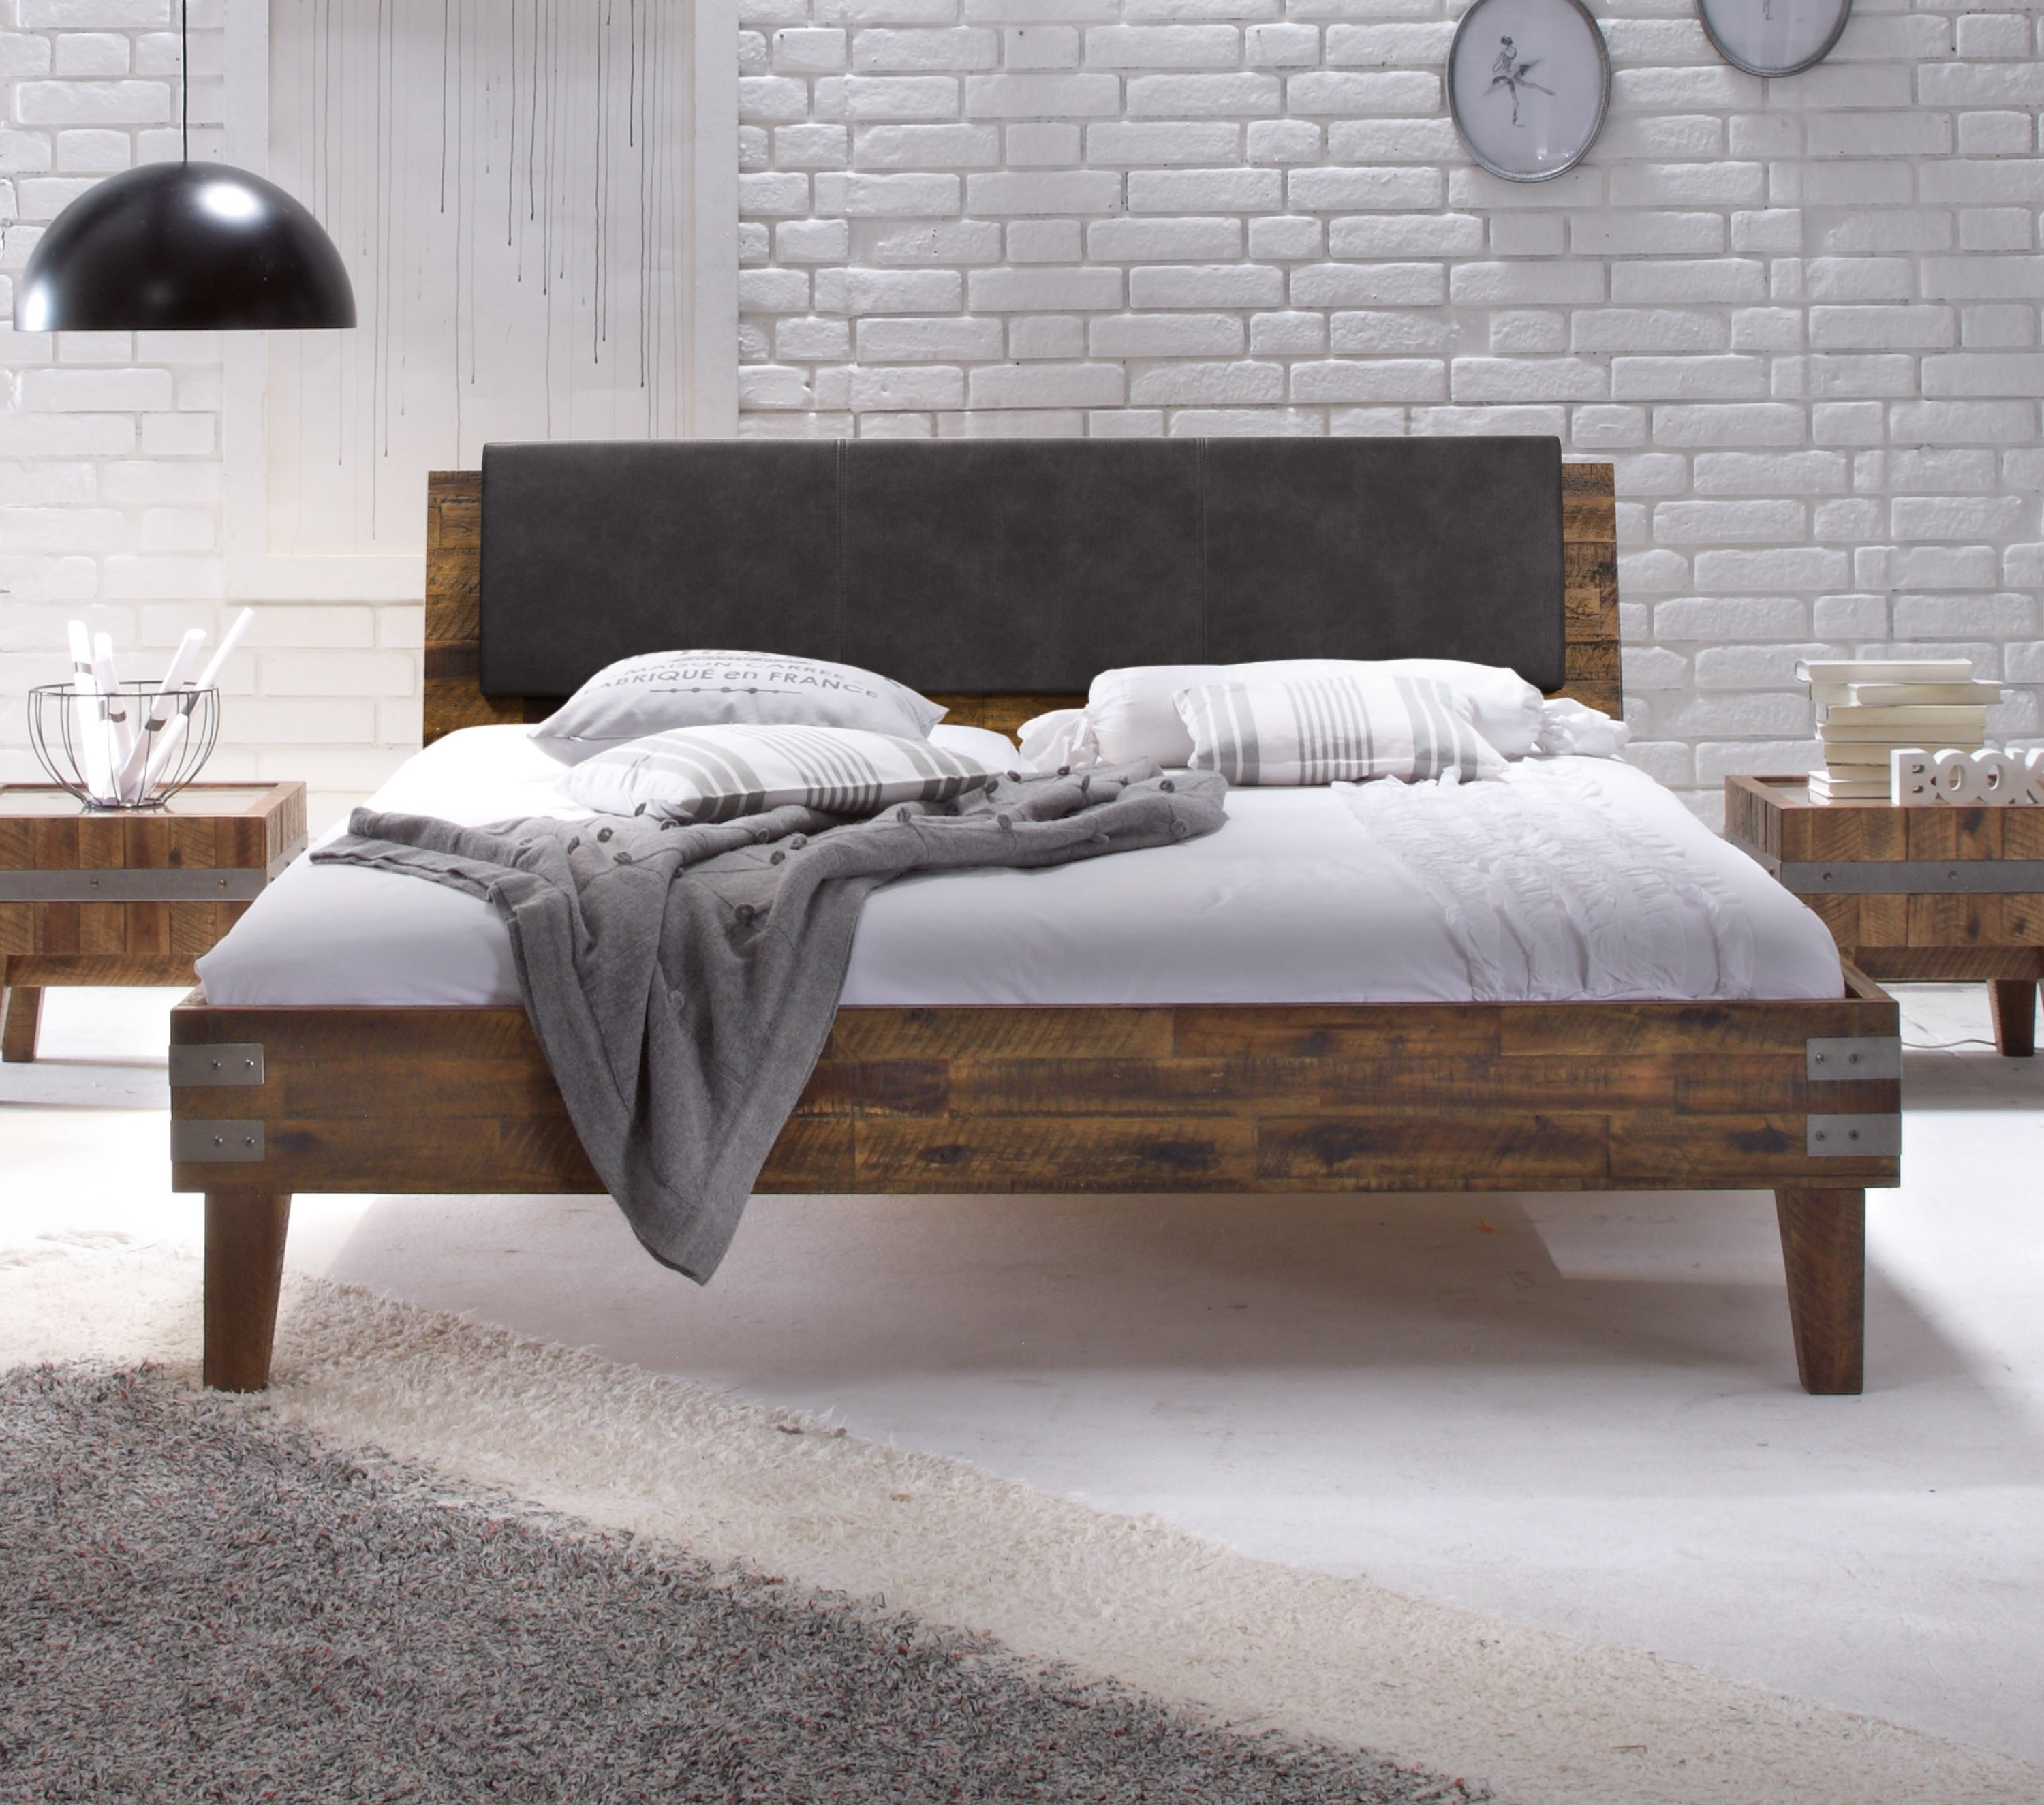 kopfteil bett polster gallery of diy betthaupt polstern. Black Bedroom Furniture Sets. Home Design Ideas